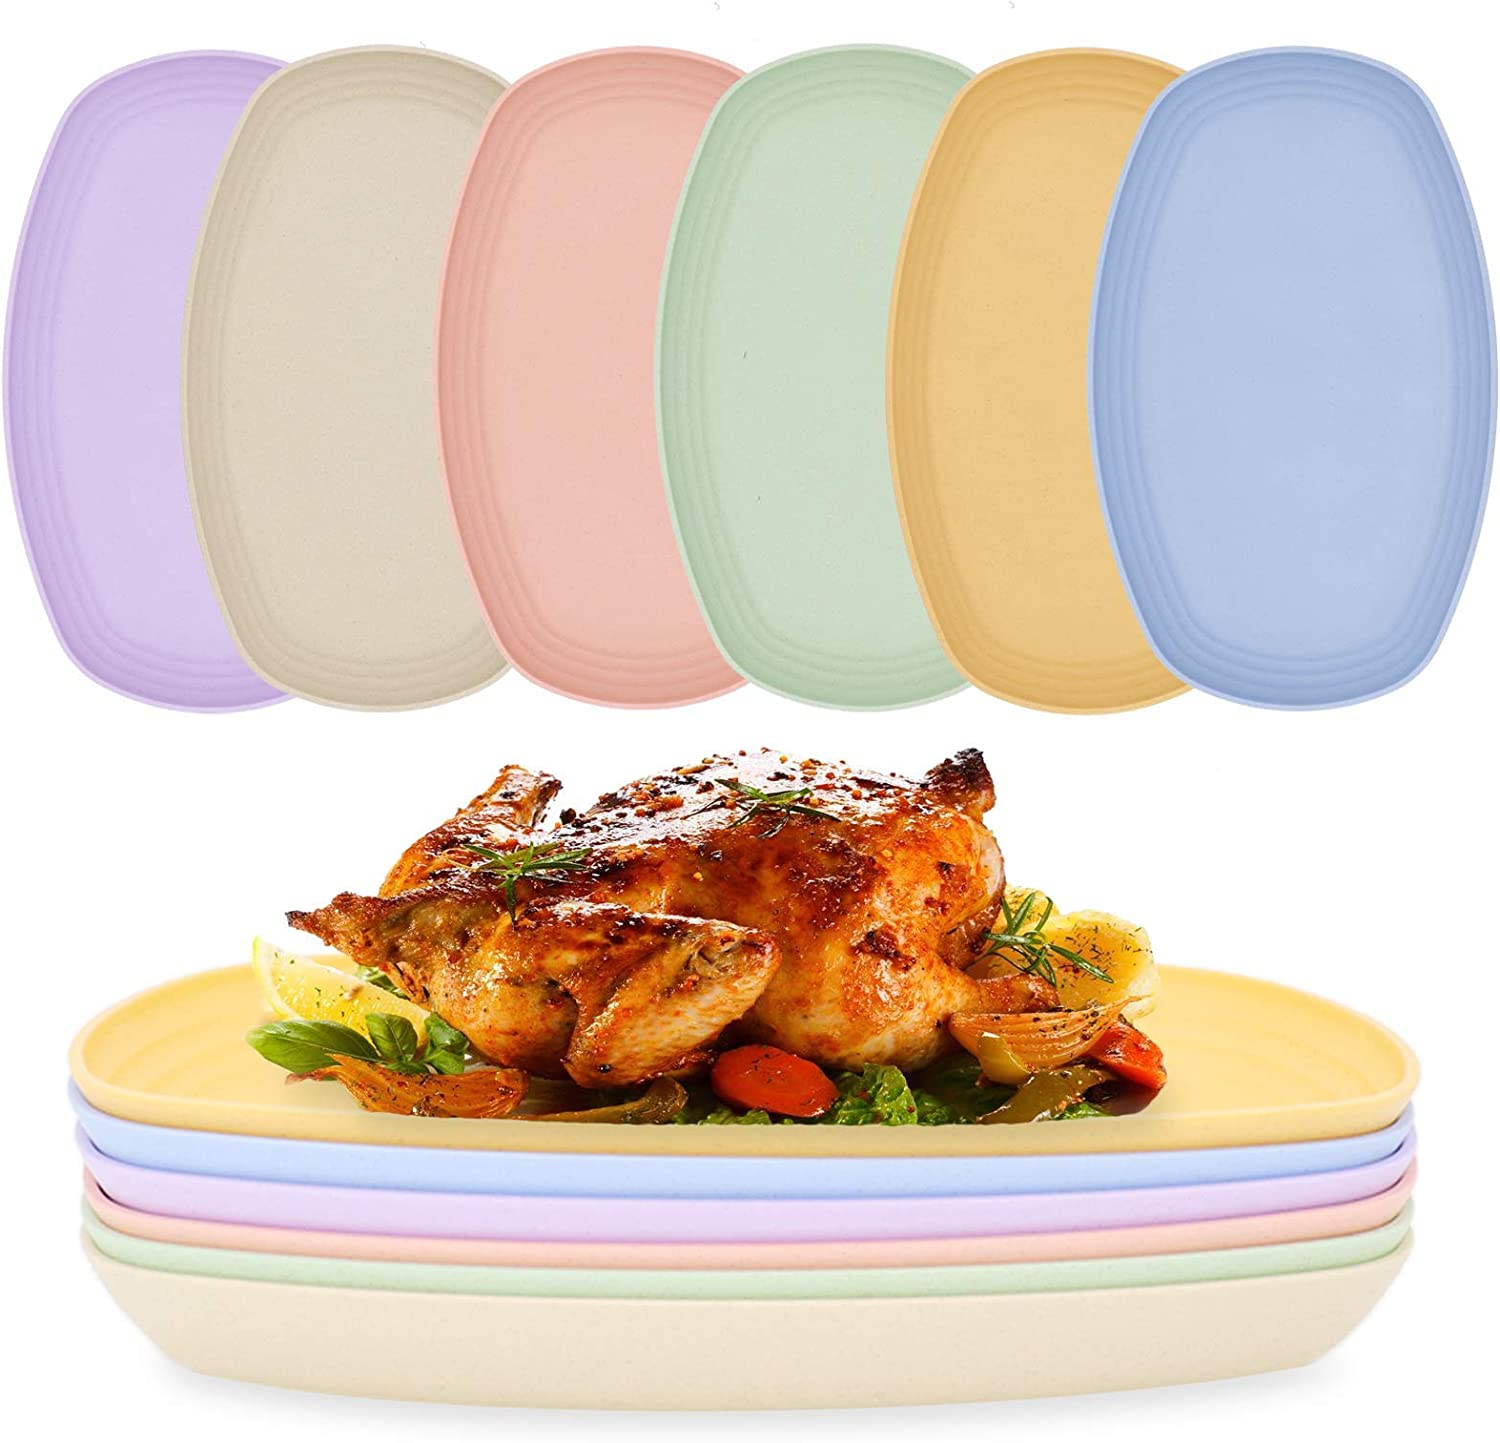 Set of 6 Unbreakable Wheat Straw Dinner Plates, 11.5